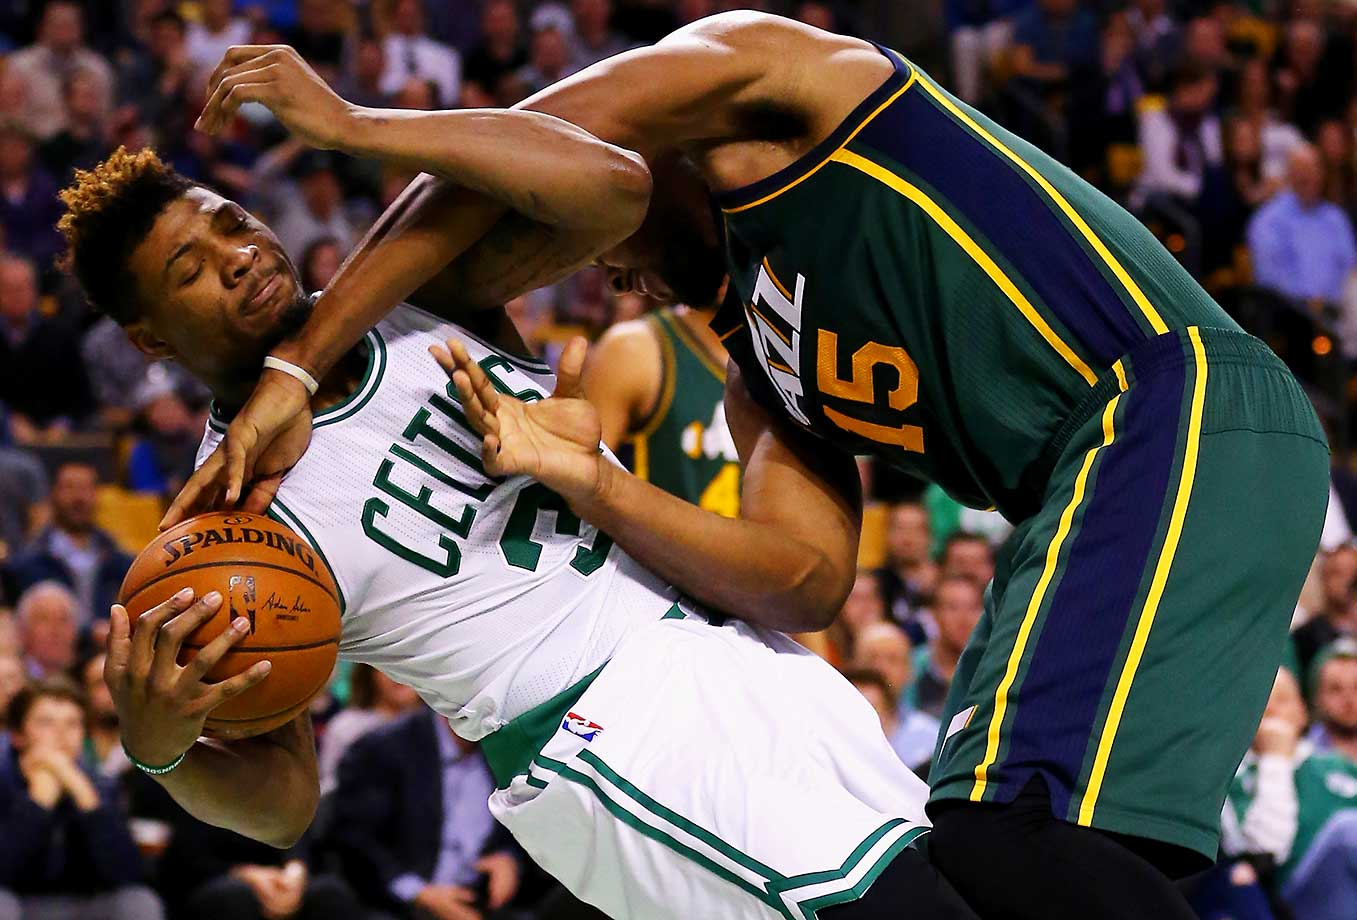 Marcus Smart of the Boston Celtics and Derrick Favorsof the Utah Jazz battle for a loose ball.